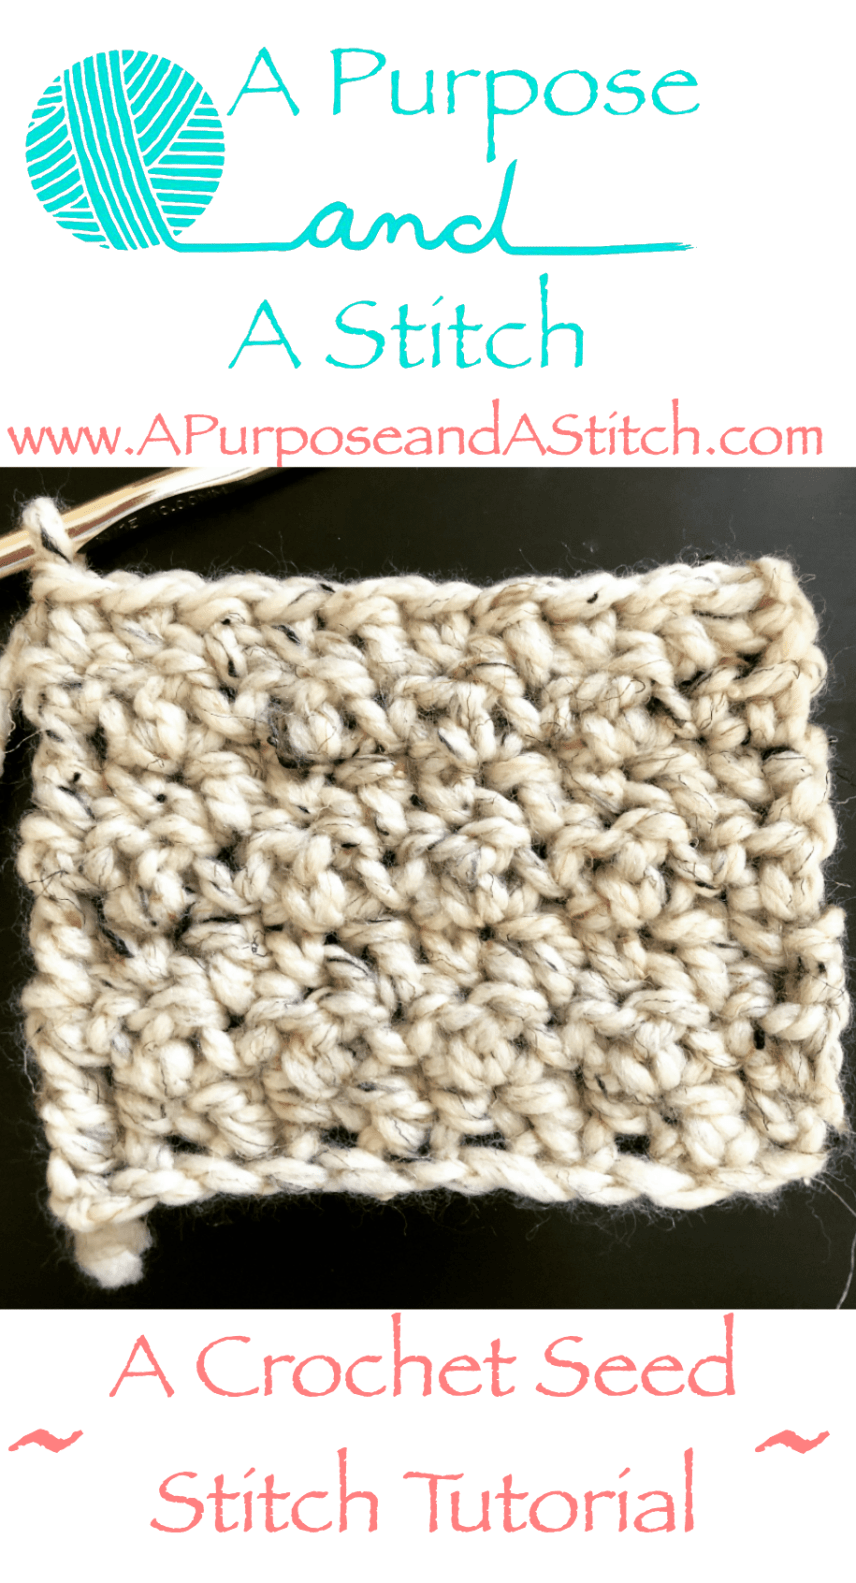 seed stitch tutorial